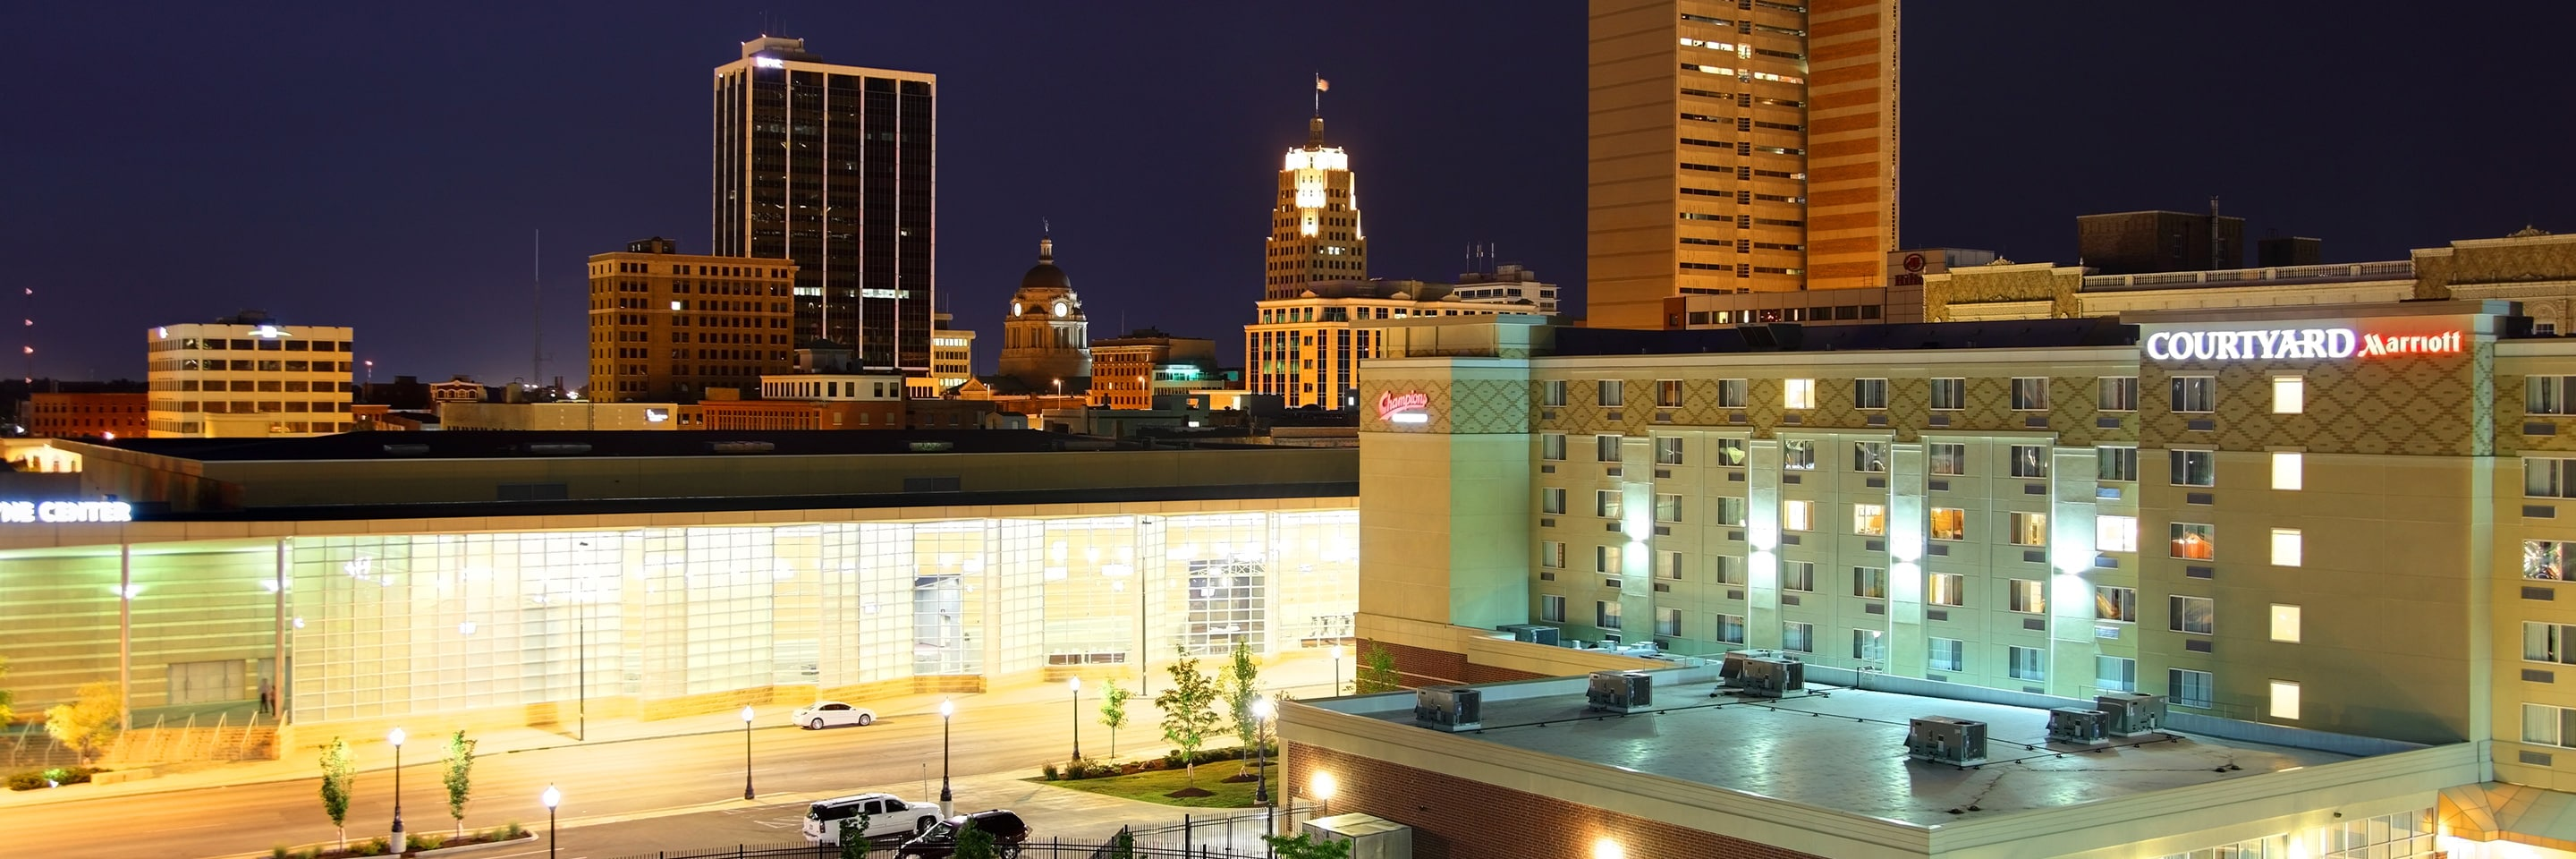 Hotels in Fort Wayne